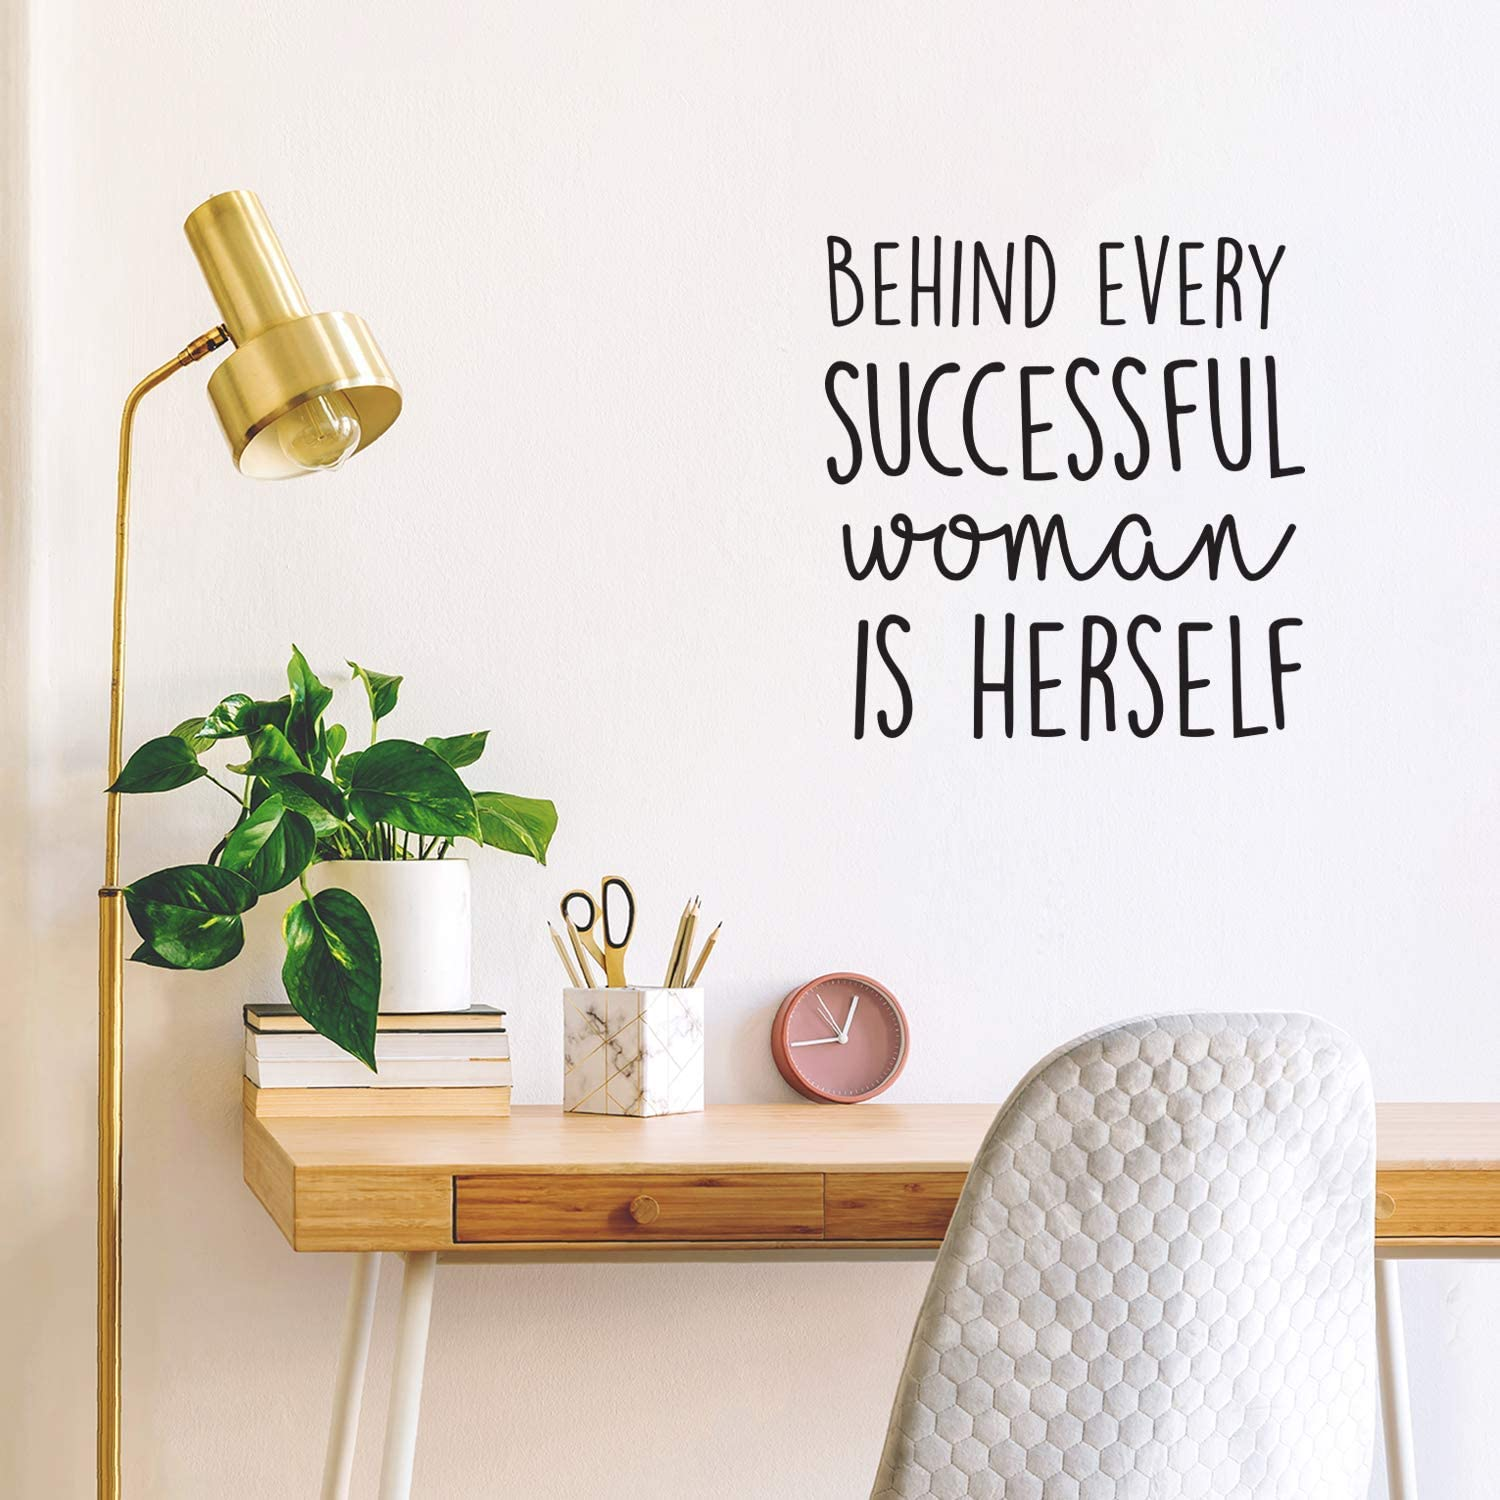 Vinyl Wall Art Decal - Behind Every Successful Woman is Herself - 23